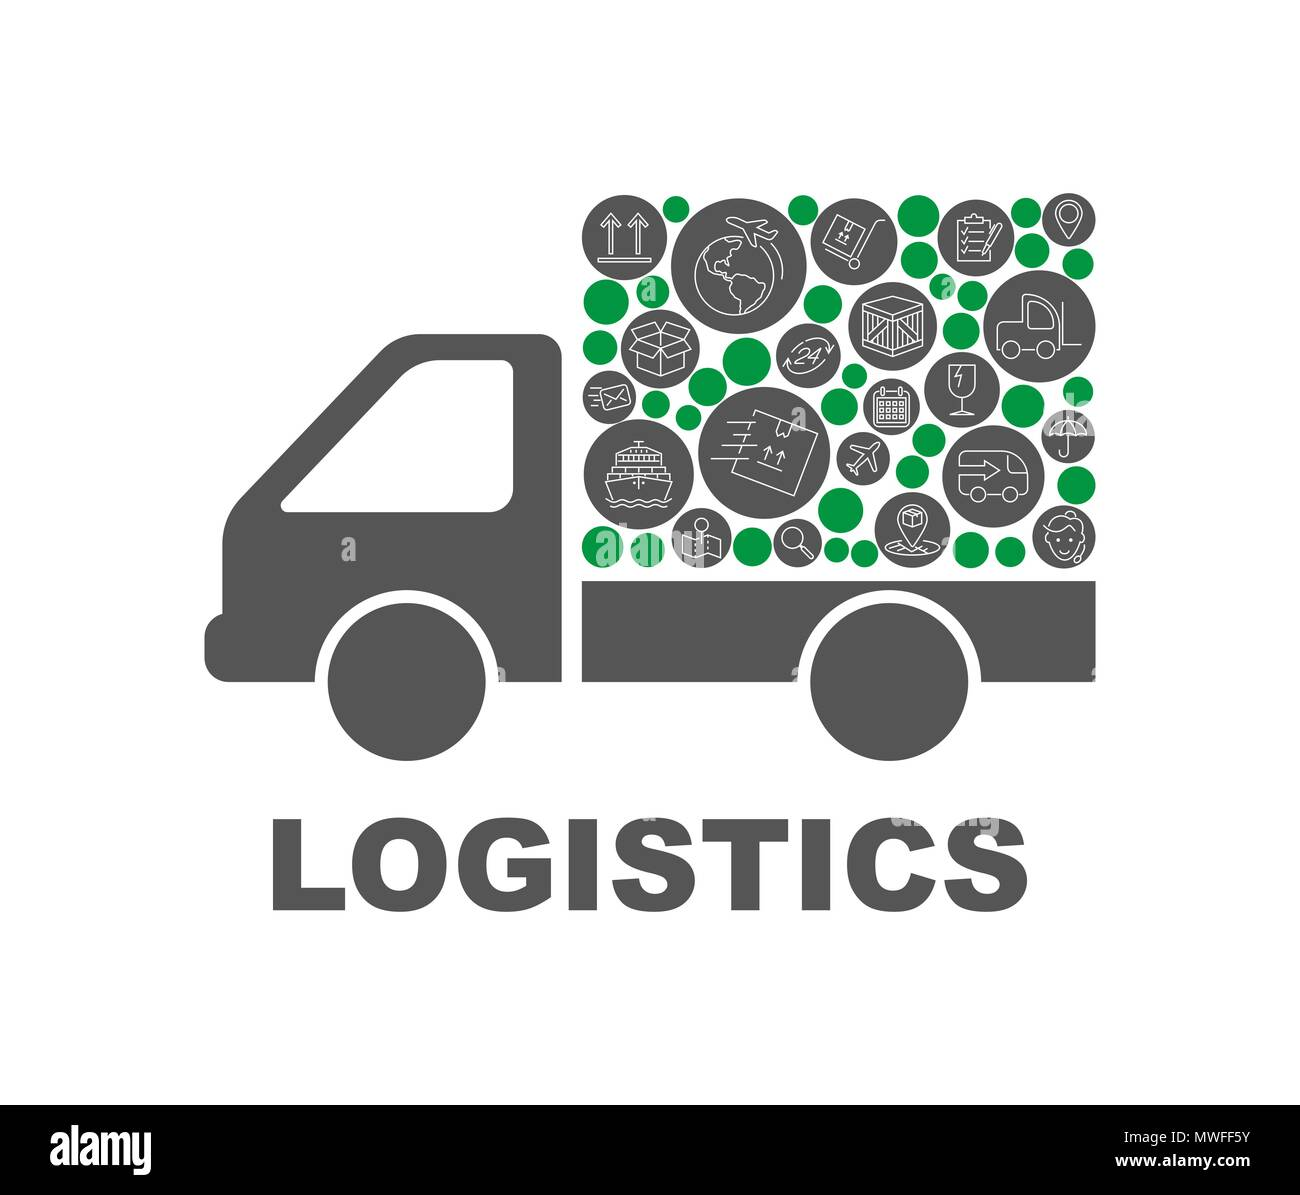 Color circles, flat icons in a truck shape distribution, delivery, service, shipping, logistic, transport, market concepts. Abstract background with connected objects Vector illustration - Stock Image